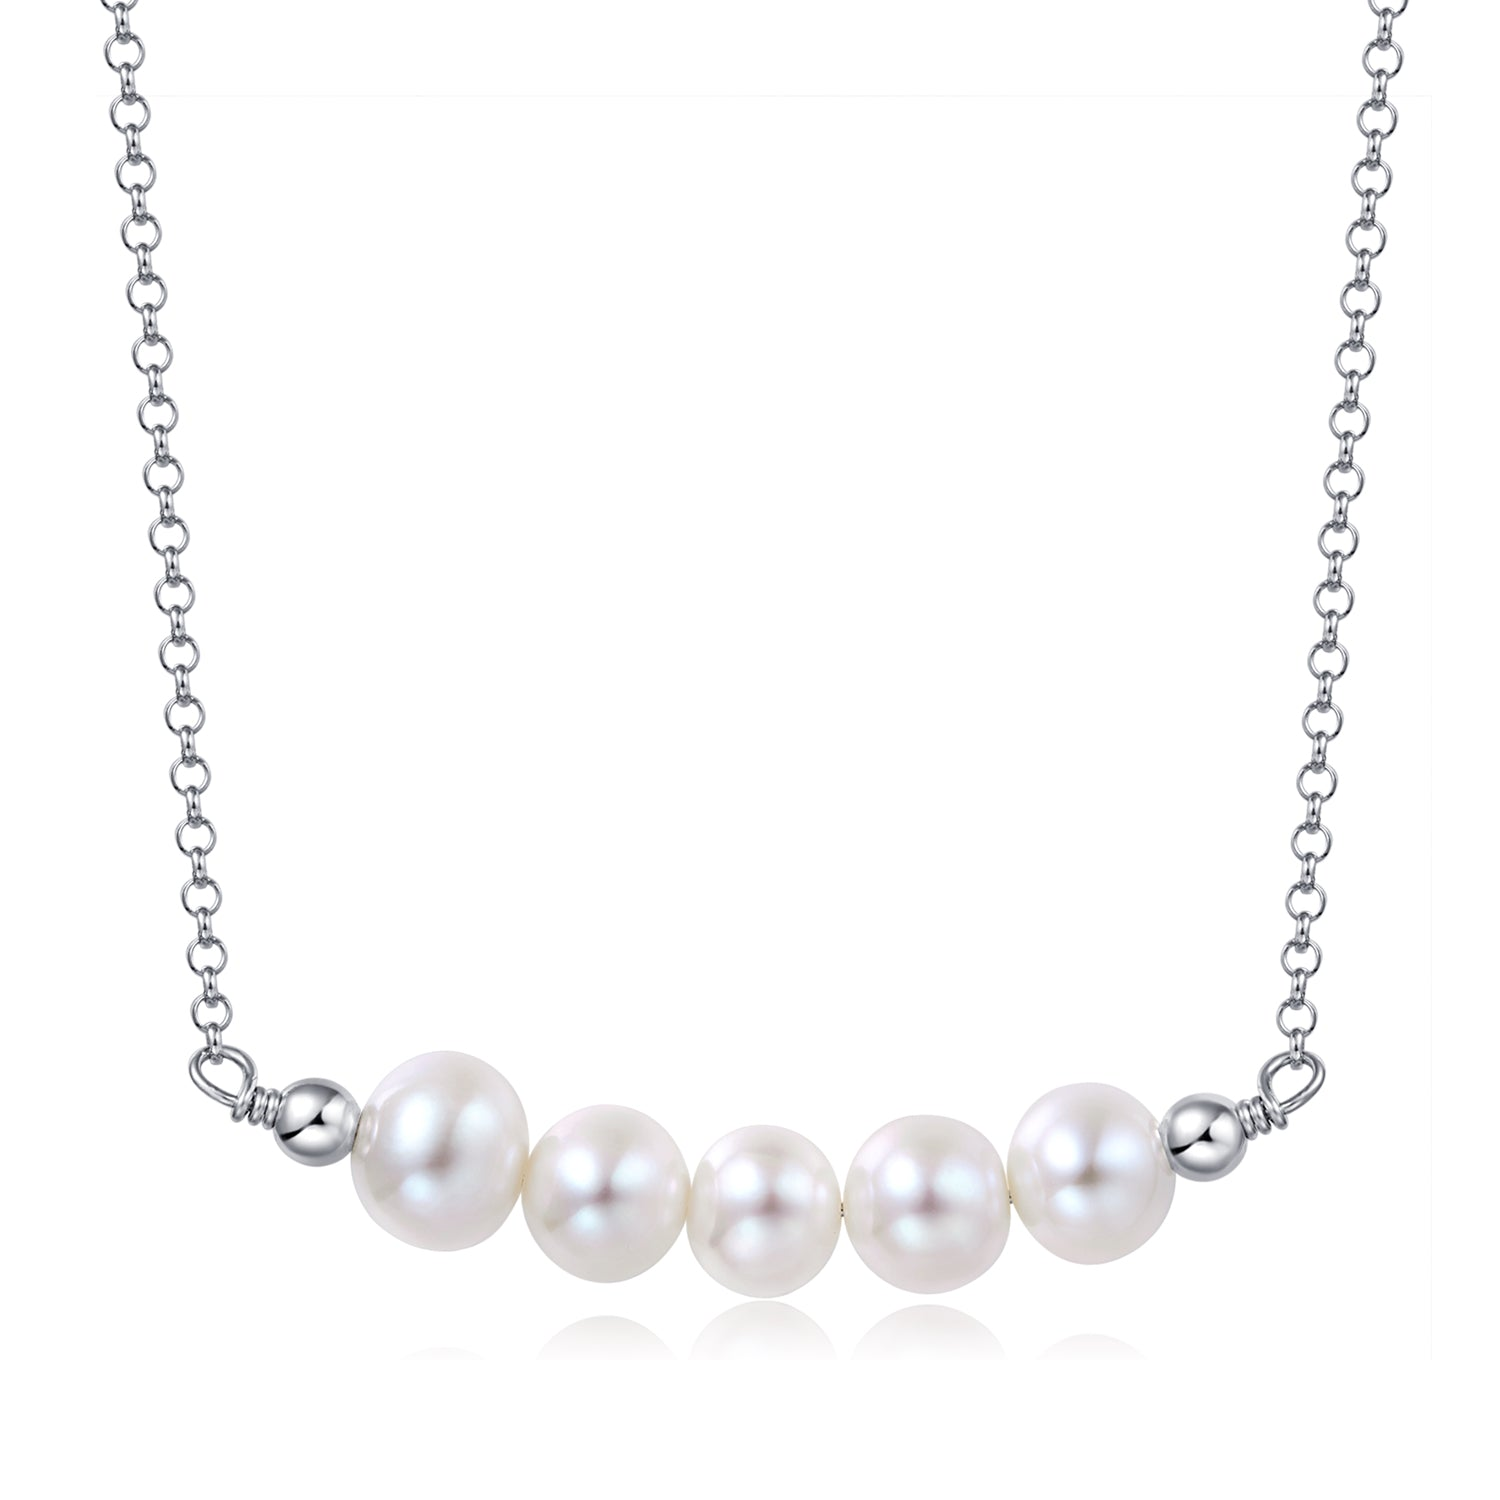 Freshwater Pearl Workshop Necklace (made to order) - Woment Designer Jewelry